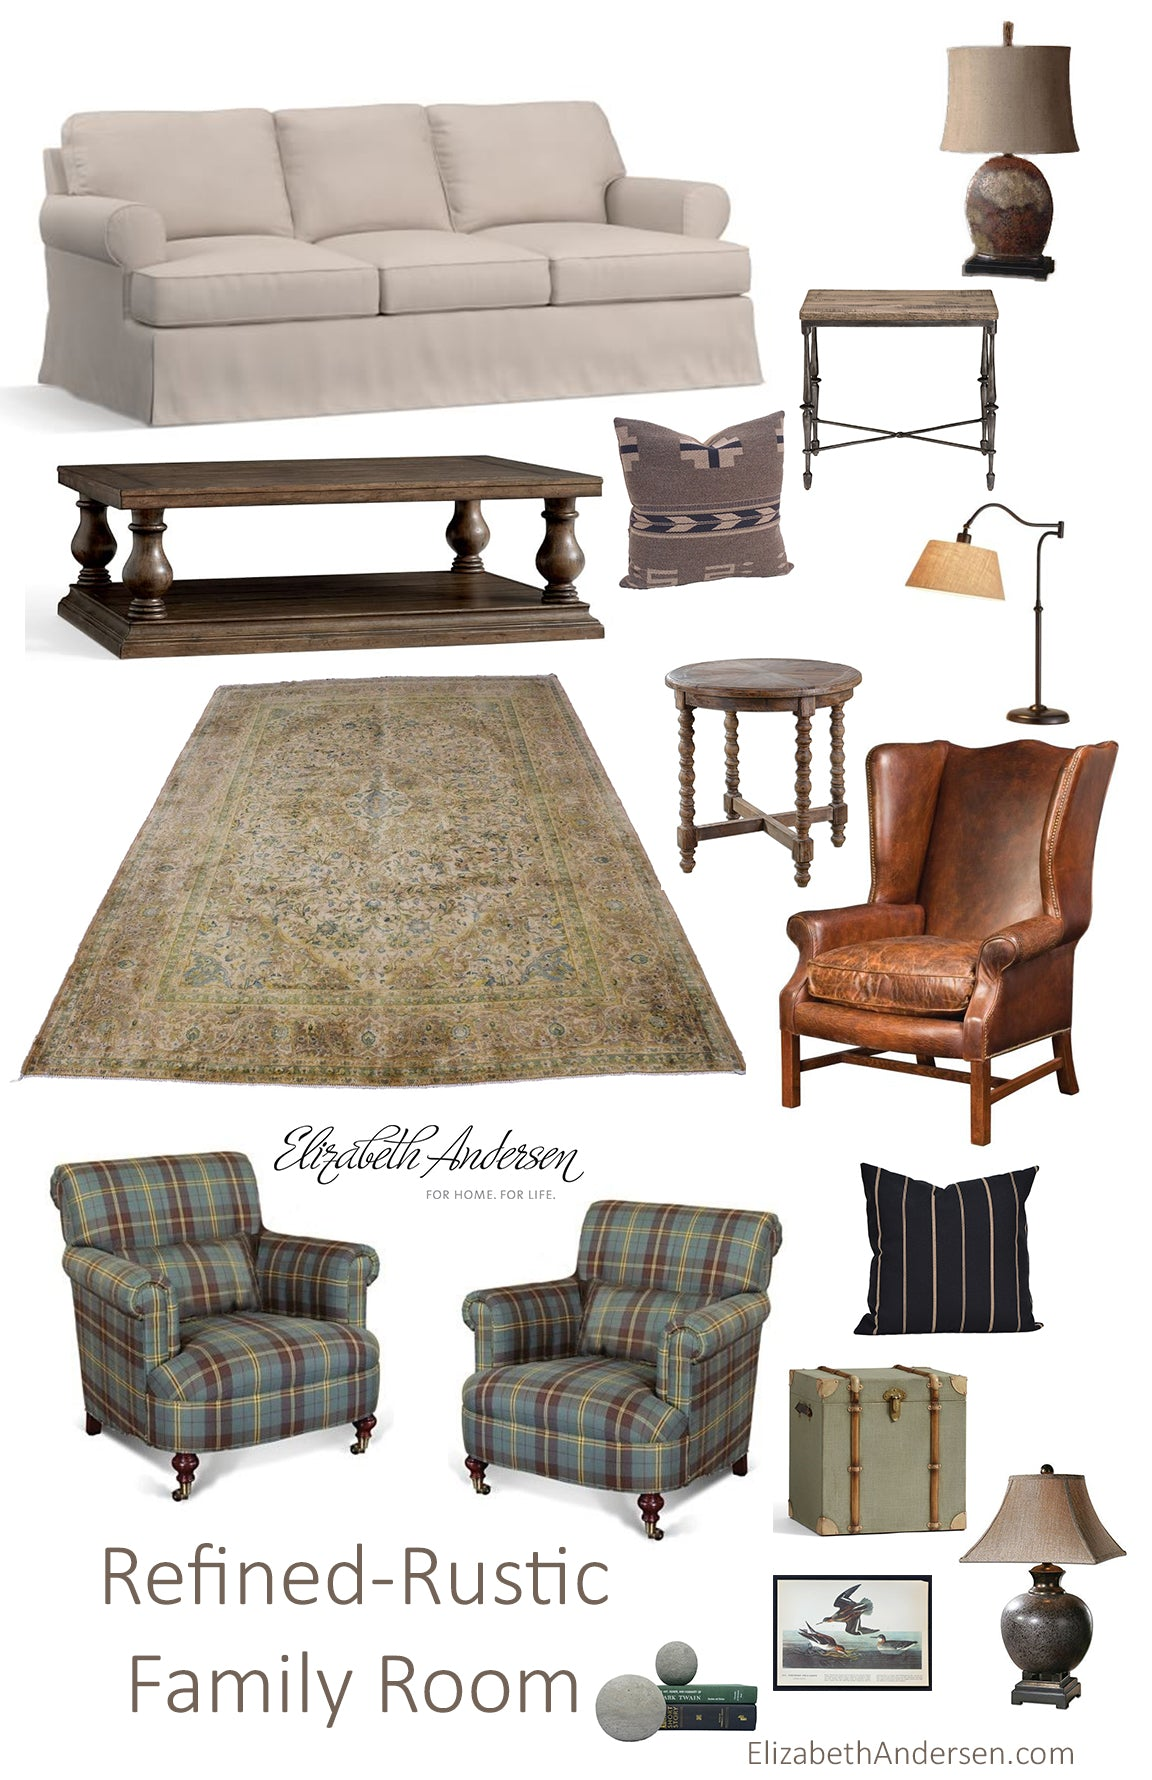 refined rustic living room montage from elizabethandersen.com